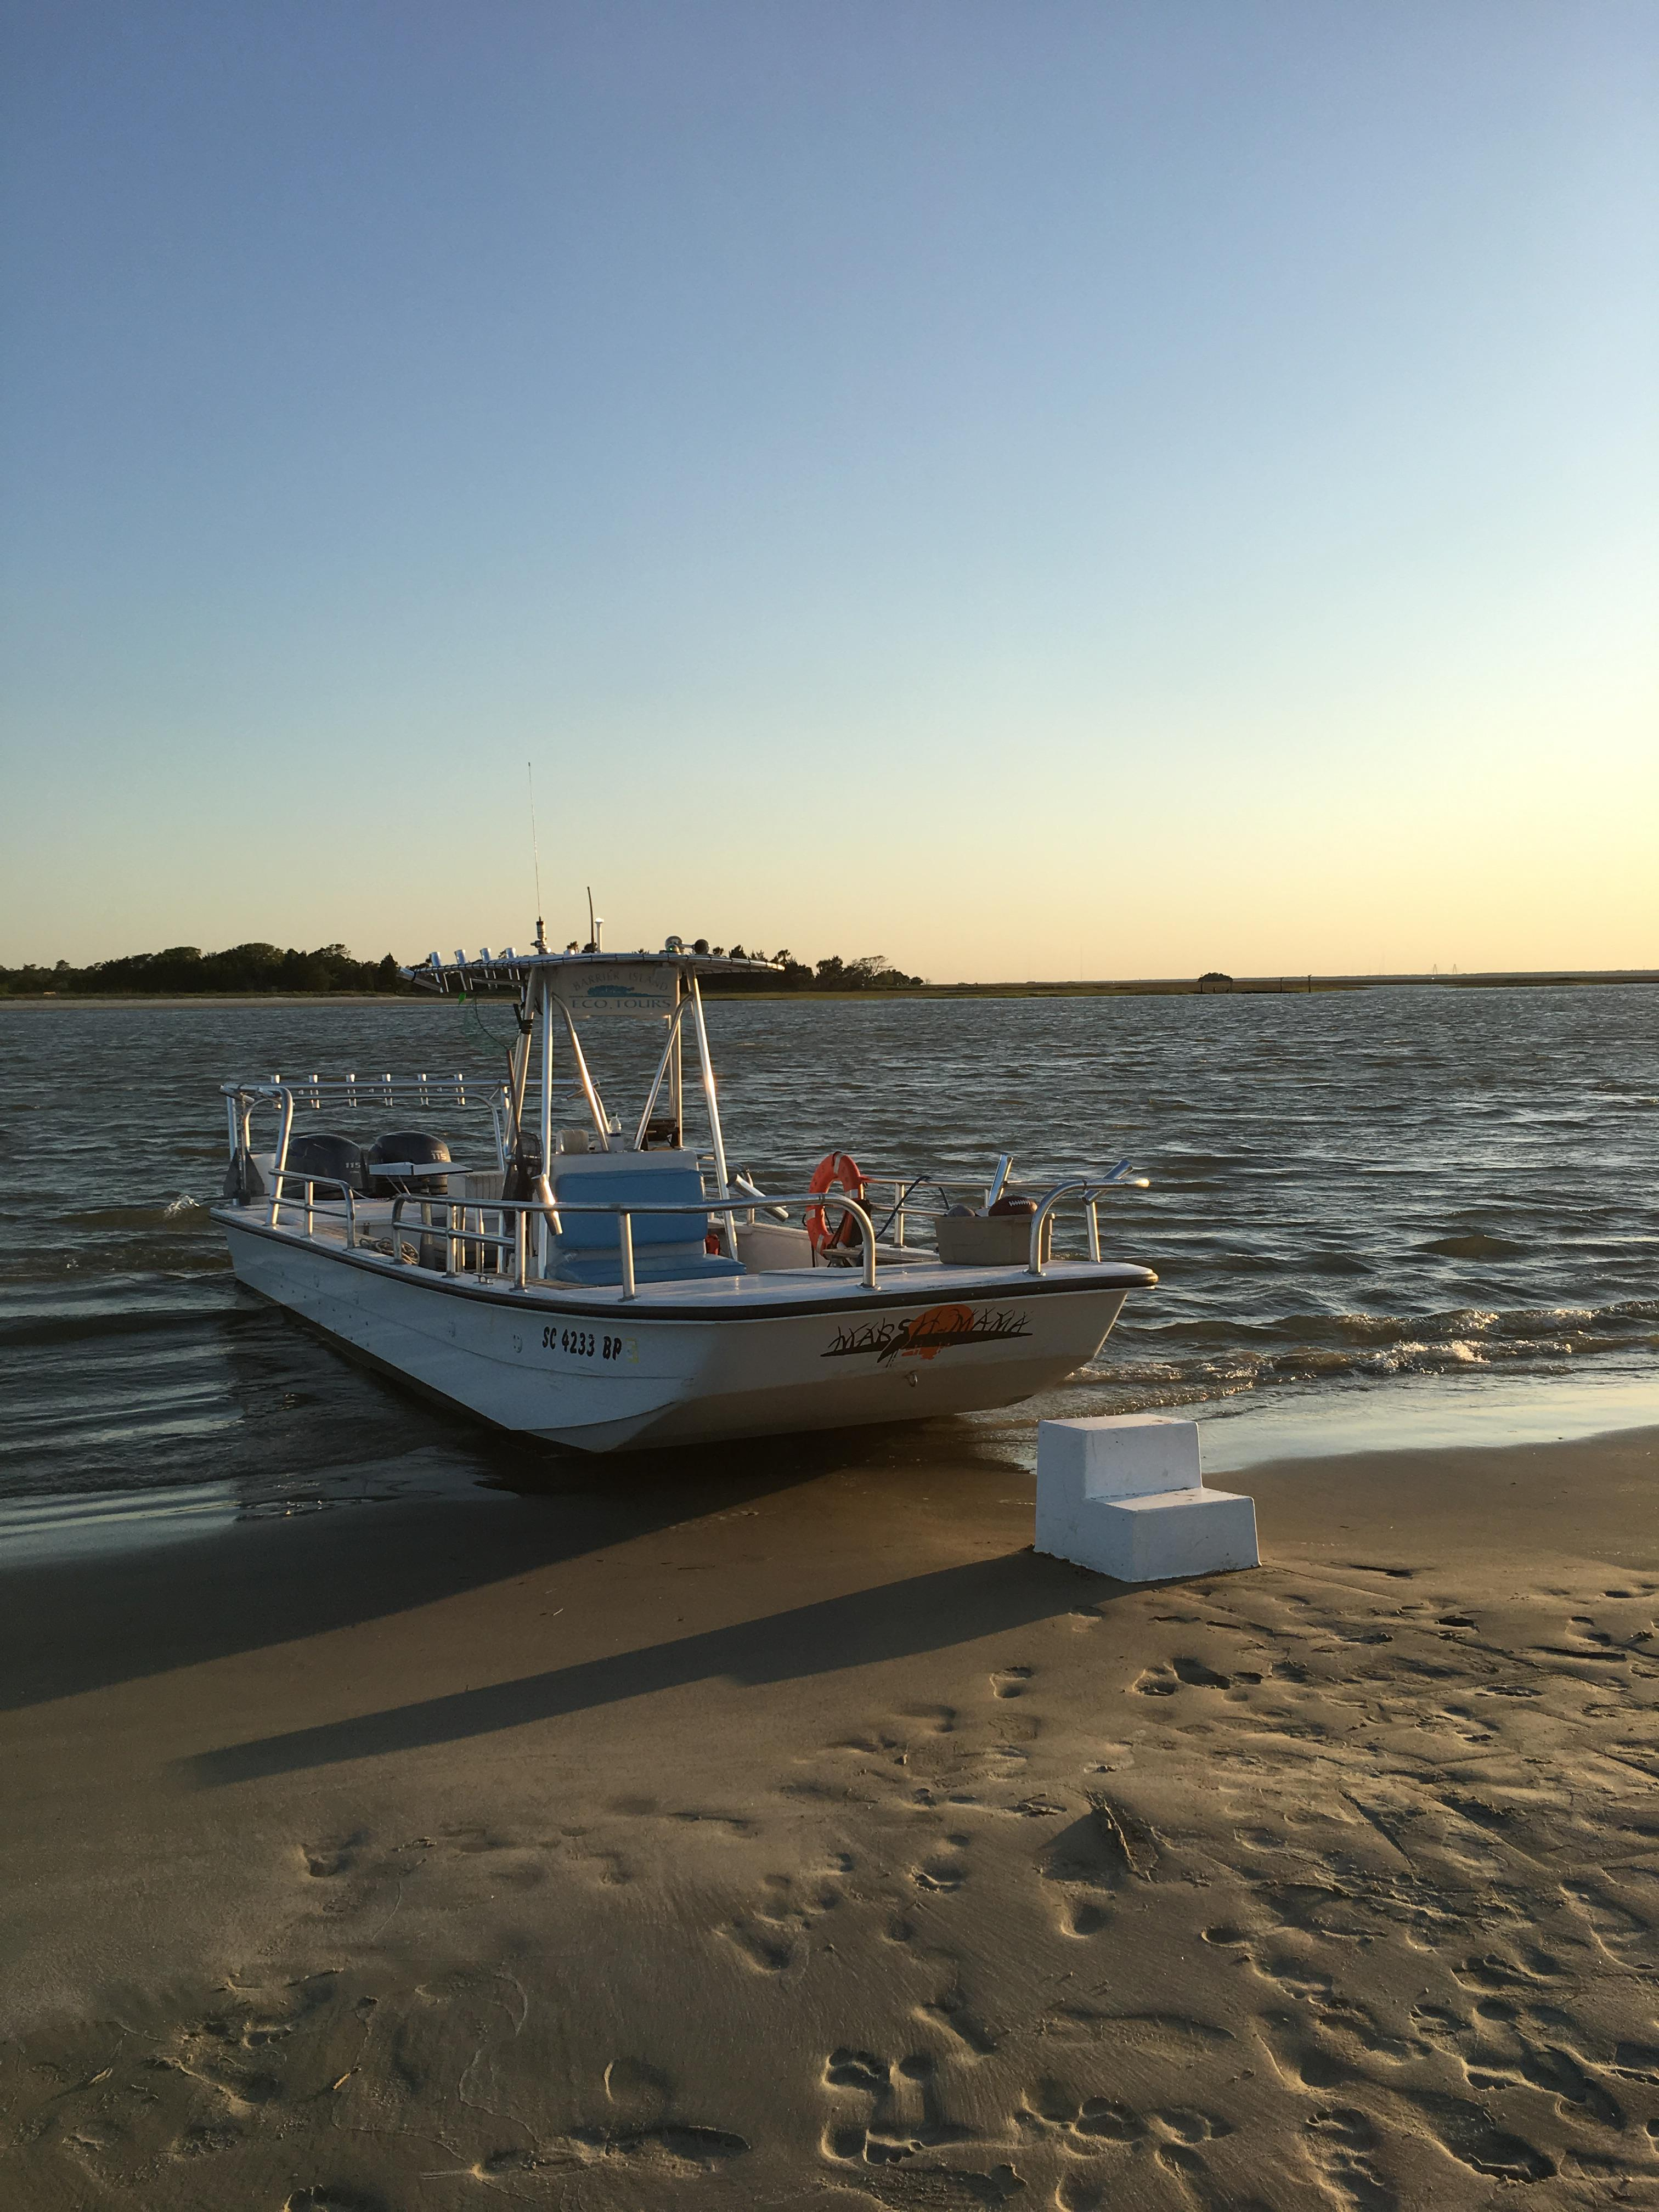 Barrier Island Eco Tours pontoon boat on Capers Island (Photo by Lani Furbank)